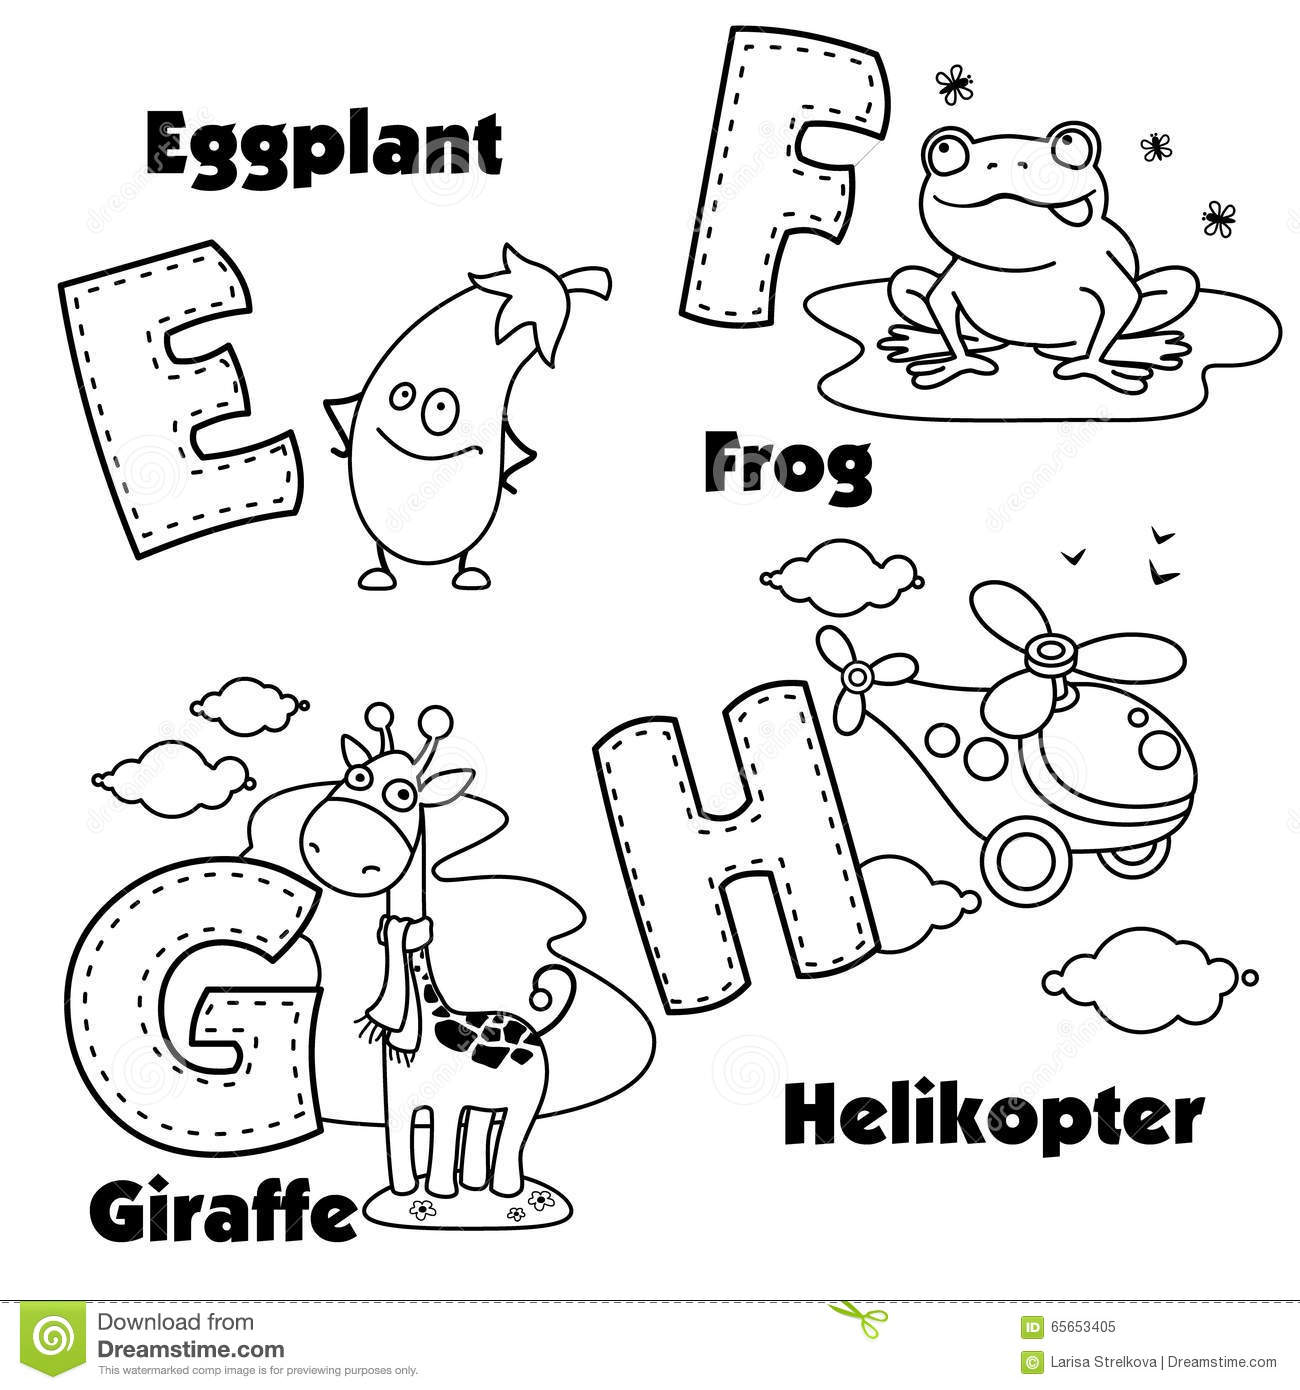 English Alphabet Coloring Pages : Printable coloring pages of english letters